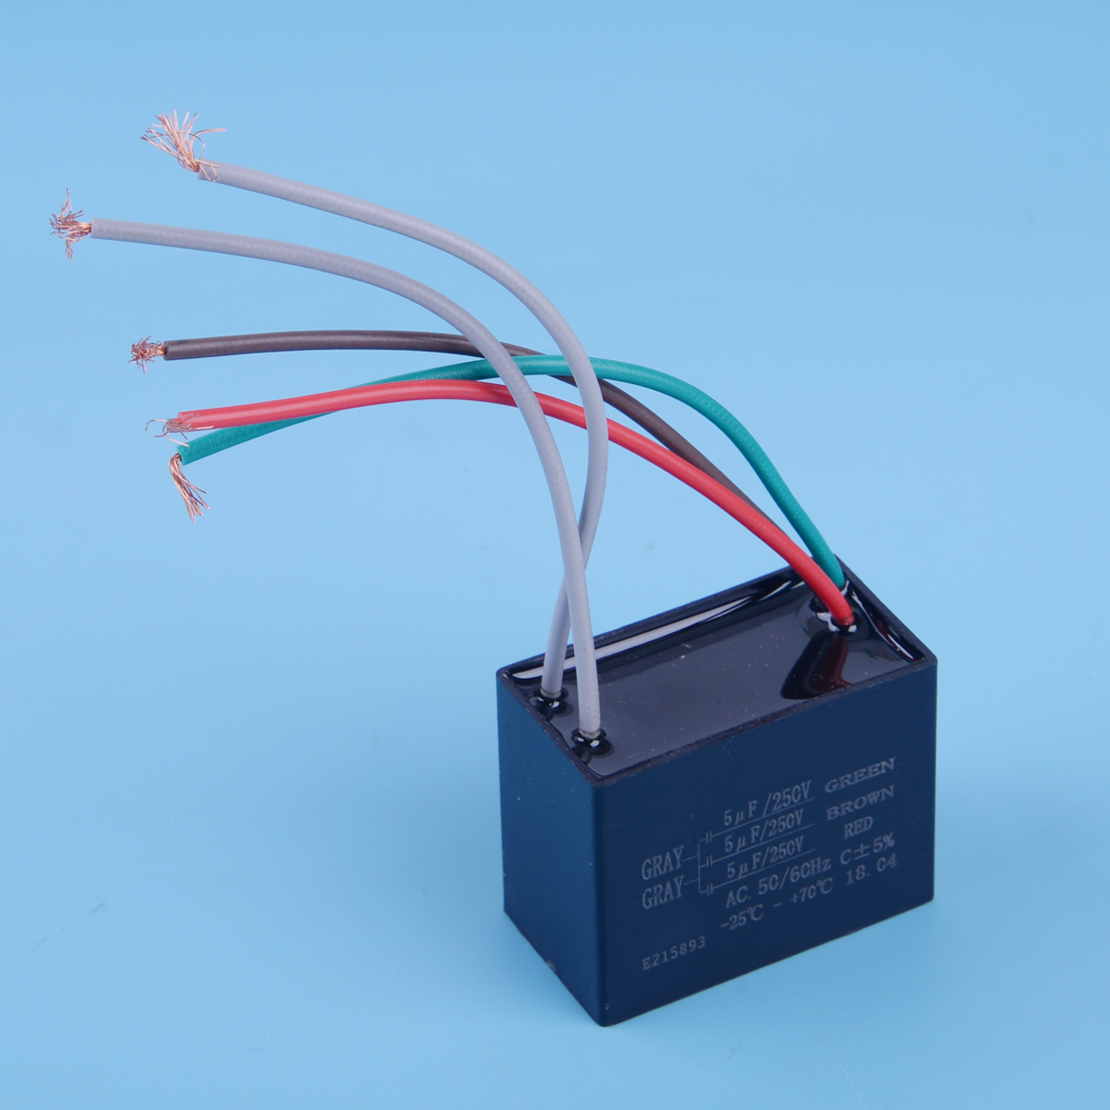 1pc Black Cbb61 Capacitor 25uf 35uf 4uf Capacity 5 Wires Type Fan Control Wiring Letaosk Ul Ceiling 5uf Wire 250vac Bm Accessories